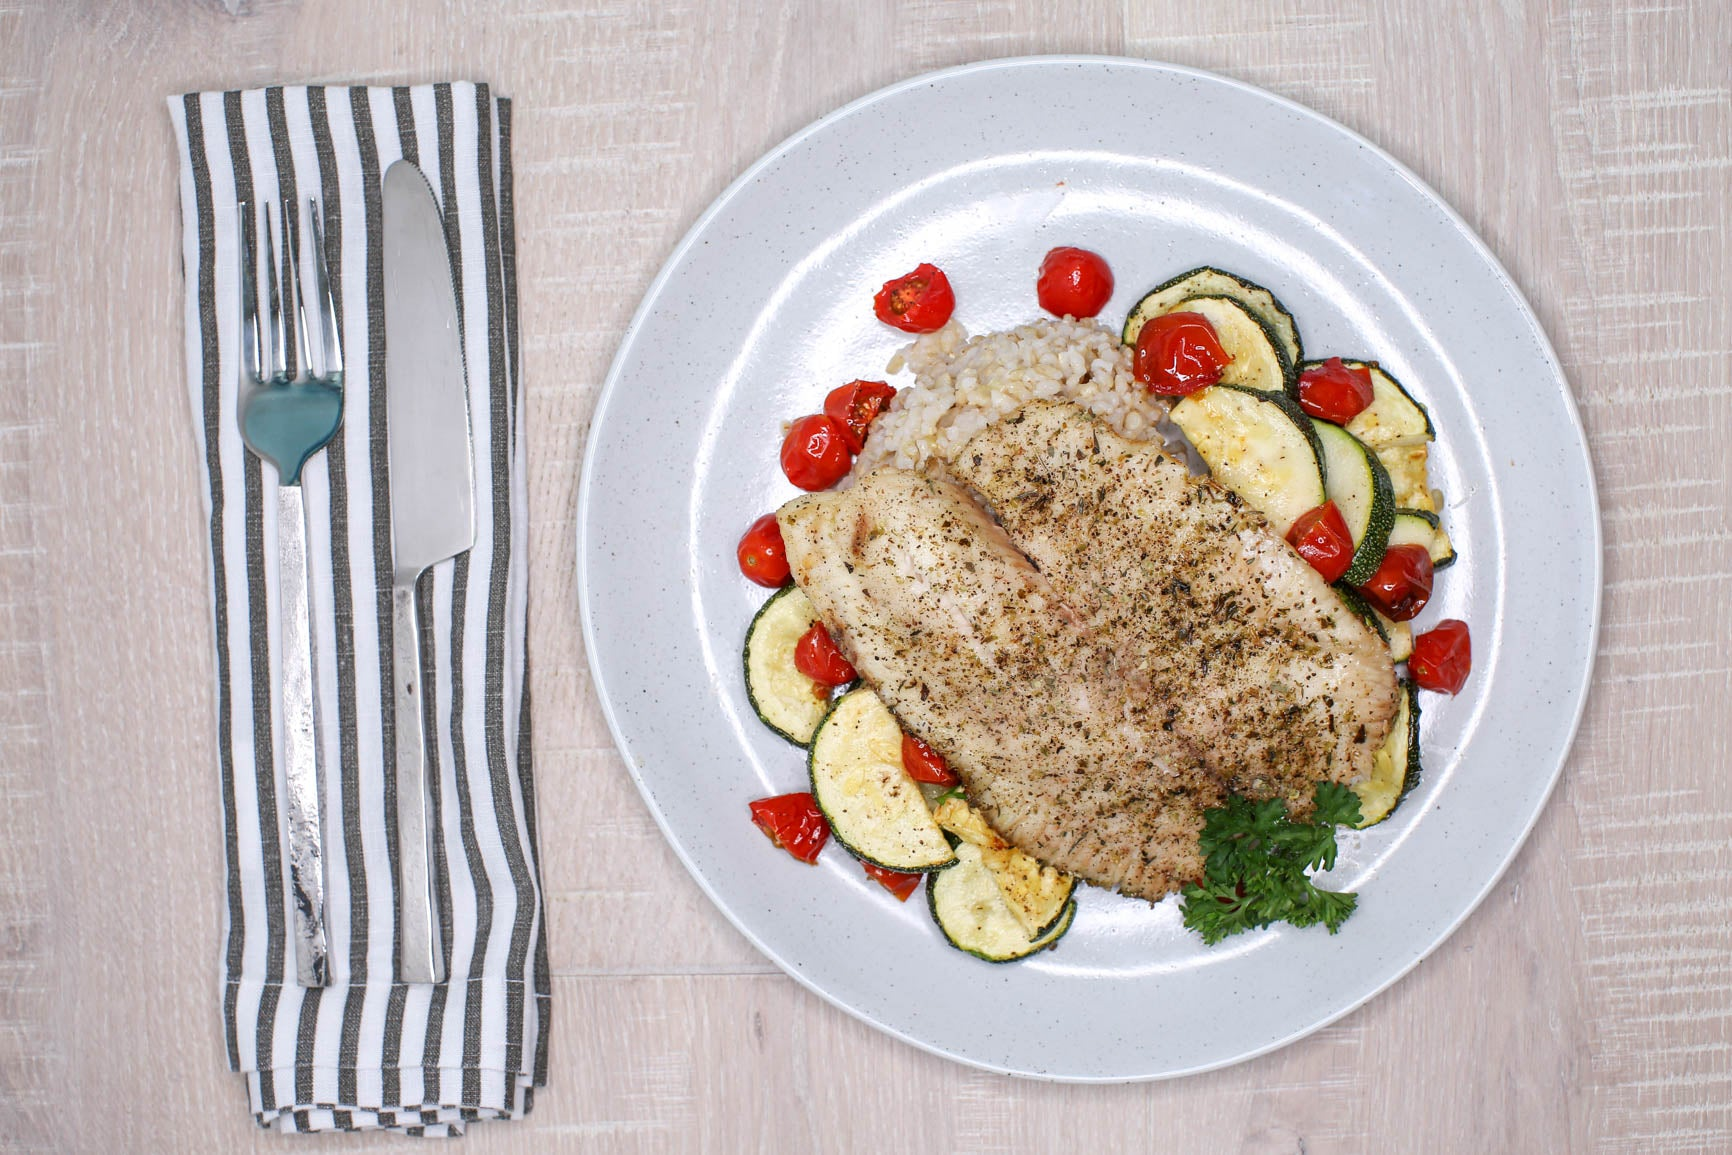 Herbed Tilapia, Zucchini & Tomatoes w/ Brown Rice